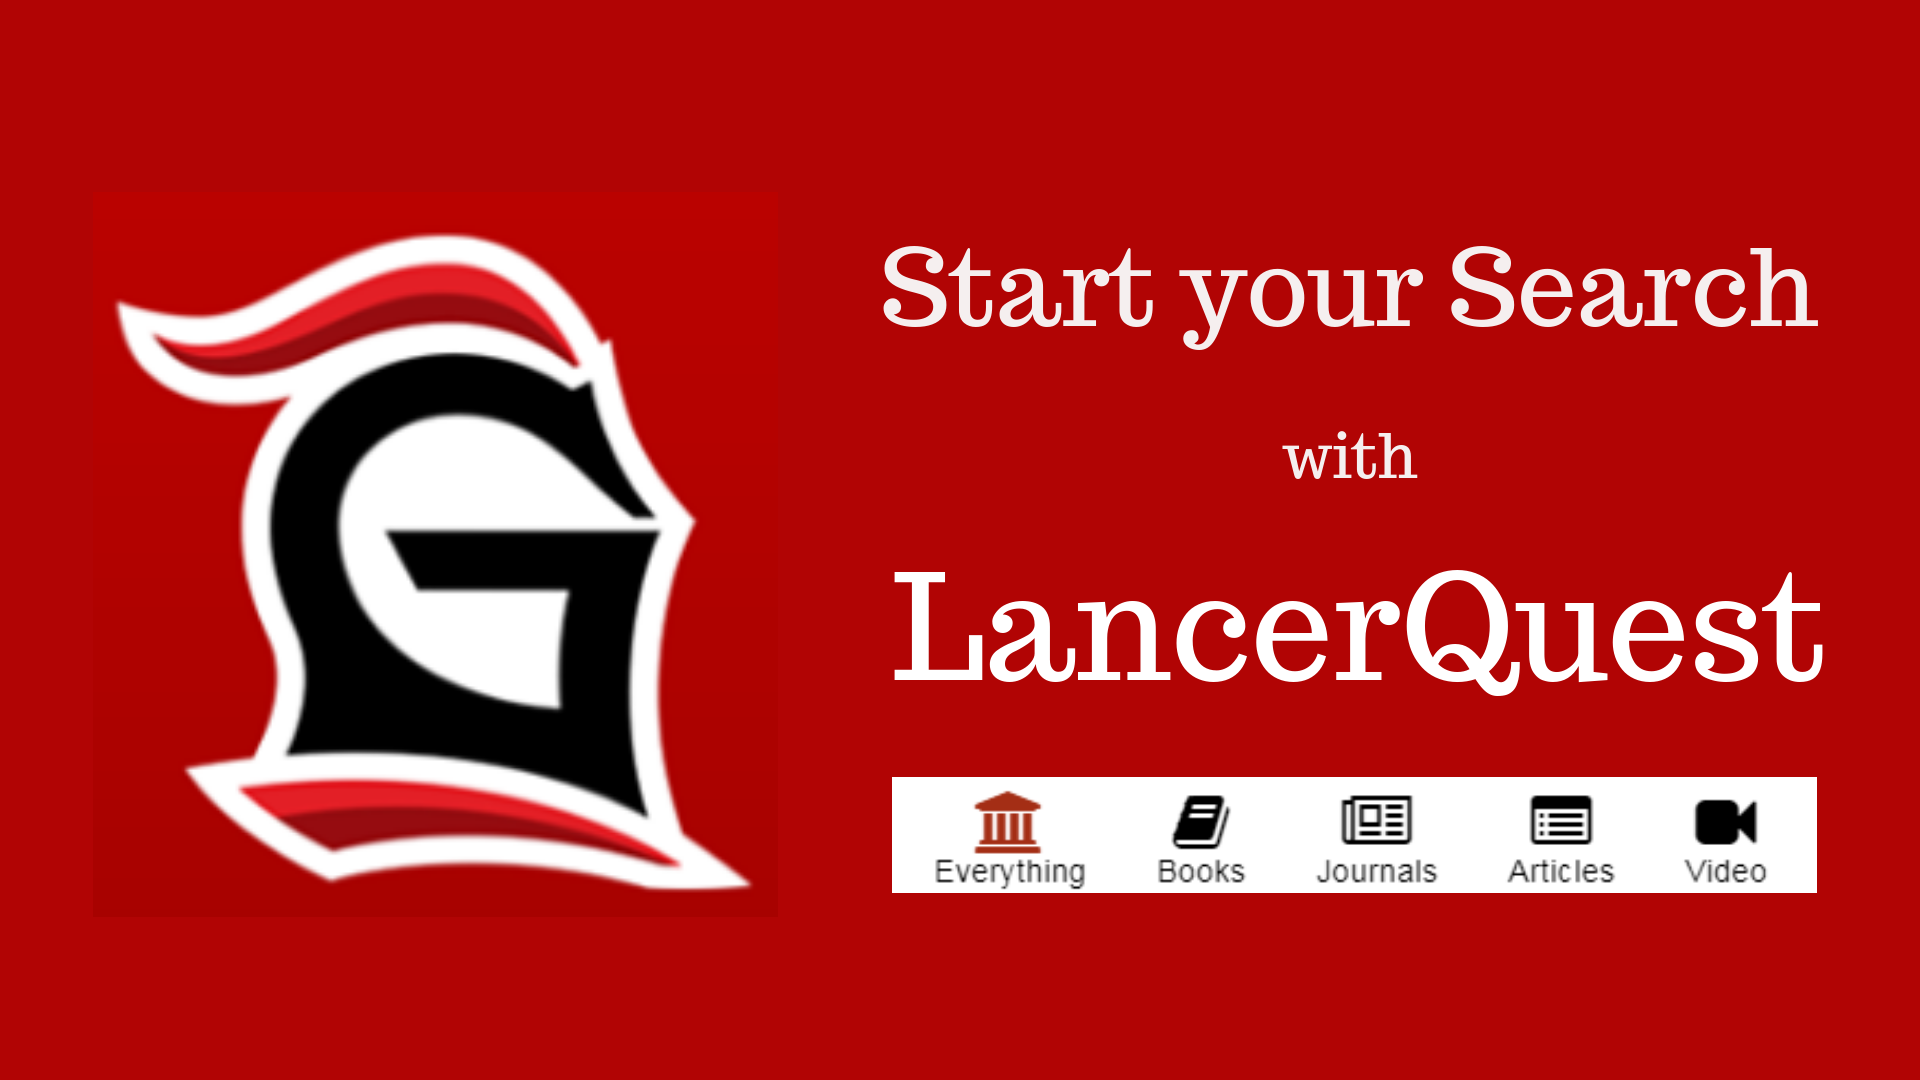 Start search with LancerQuest